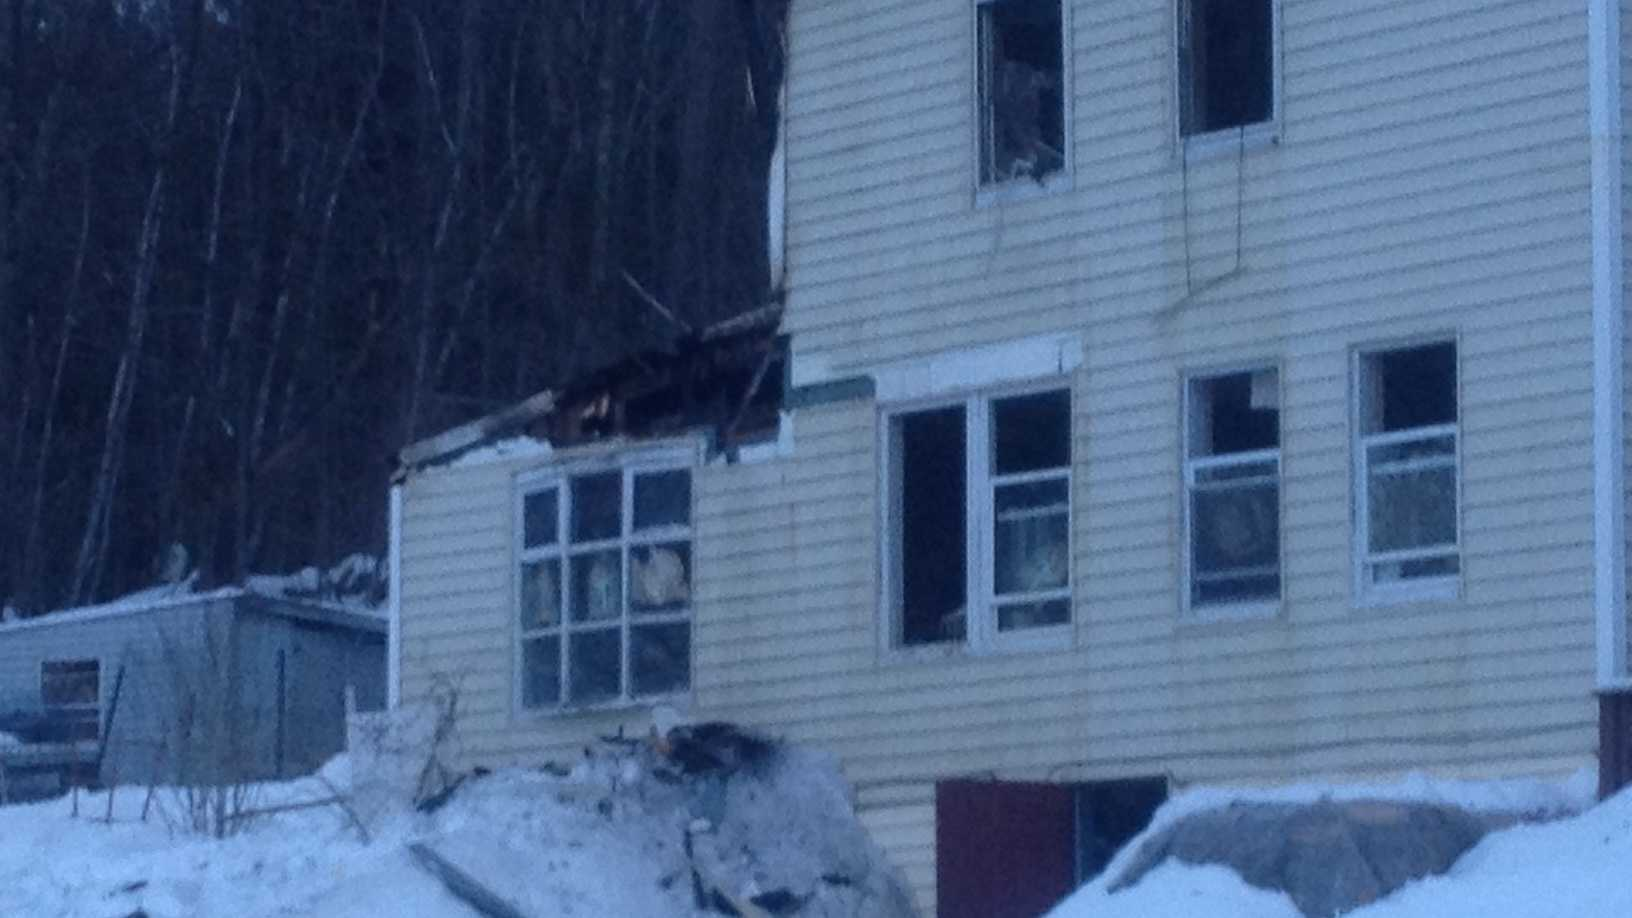 Pittsfield fire picture